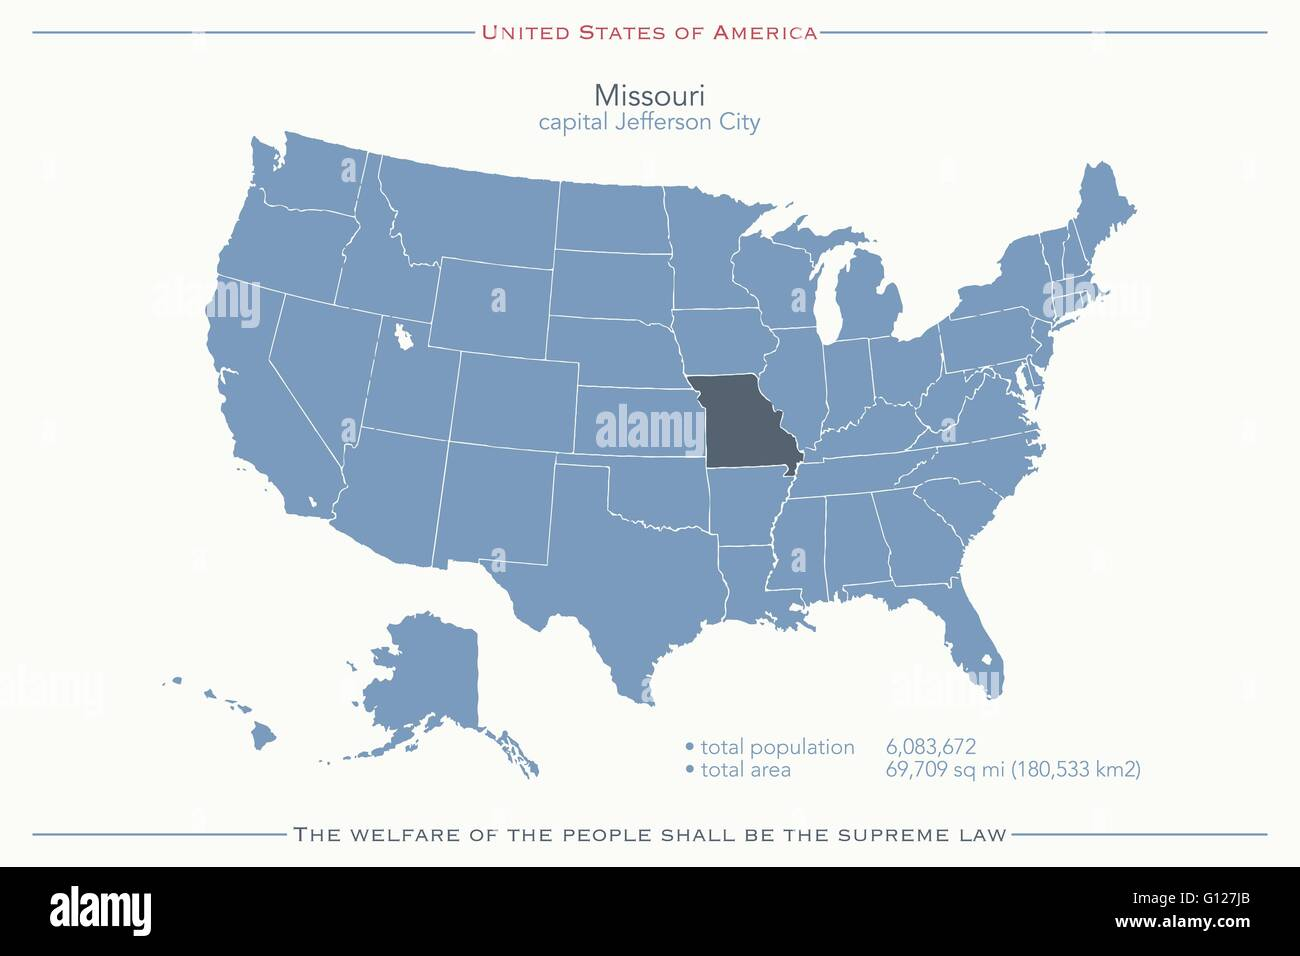 United States Of America Isolated Map And Missouri State Territory - Map of usa missouri